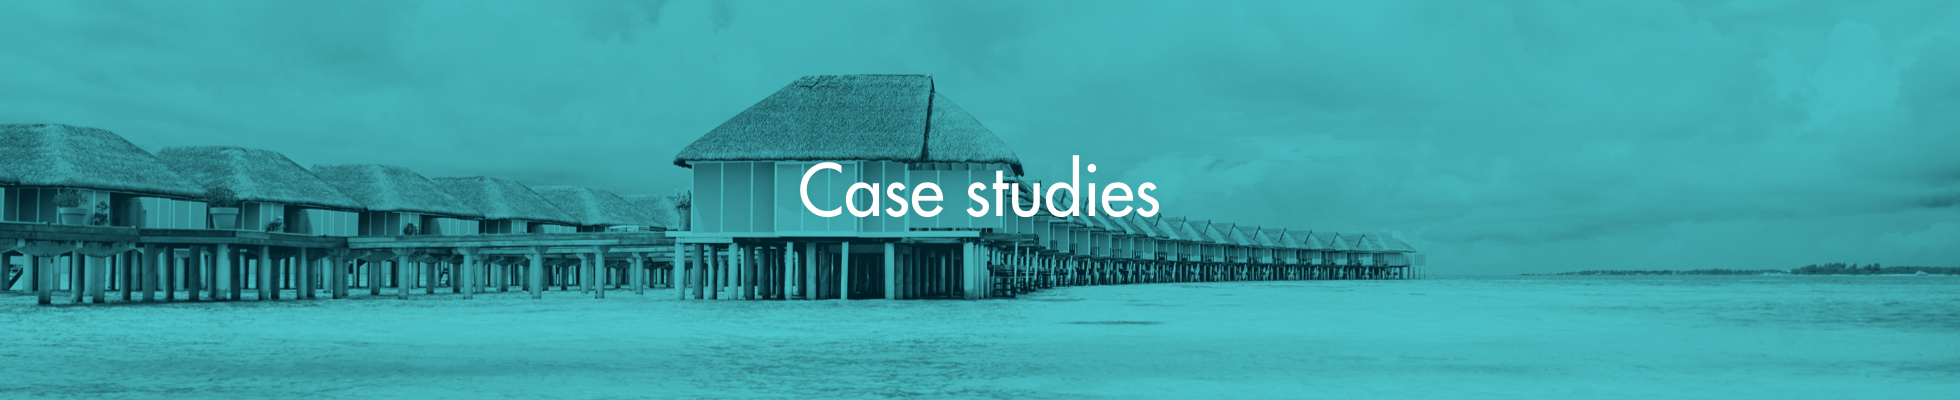 the-hotels-network-case-studies